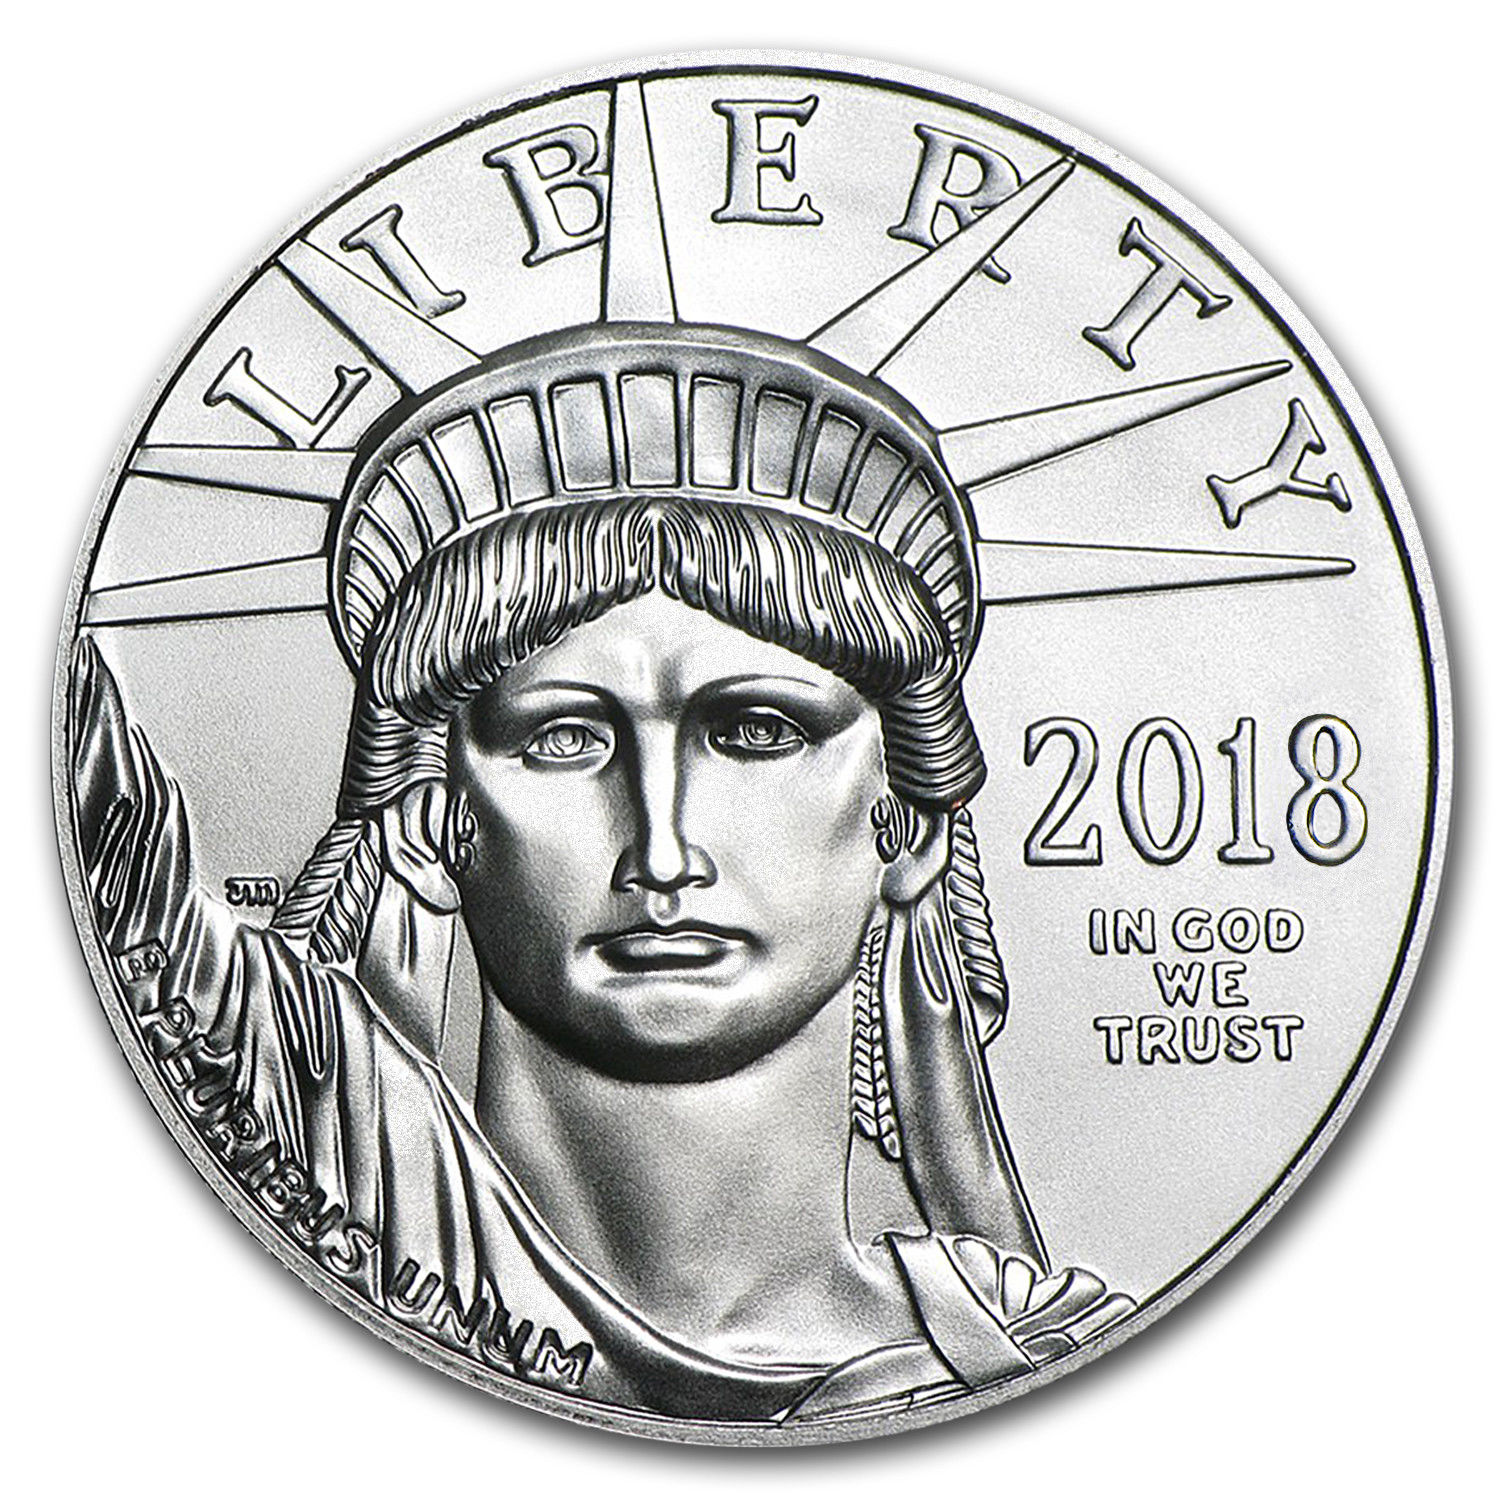 bu coin prior peace platinum shop gold central dollar years coinshow numismatics goldsilver buy silver